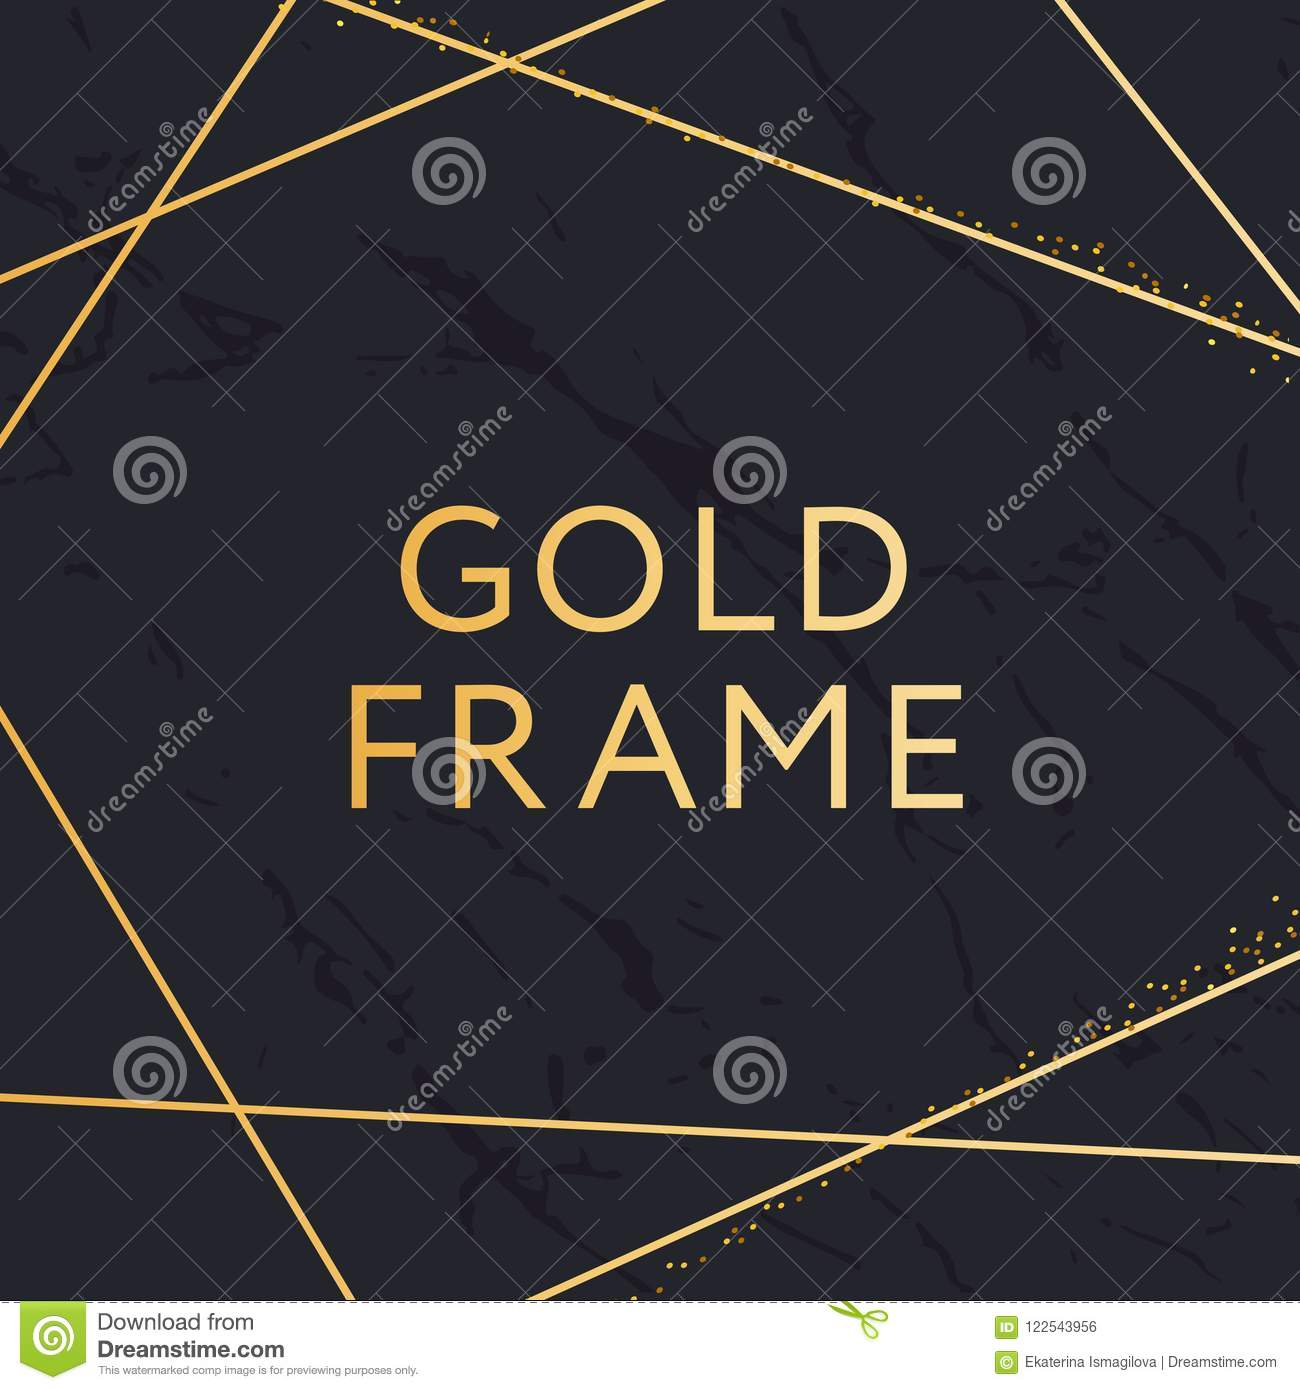 492b3af38b8 Gold Frame Geometric Shape Minimalism Vector Design Banner Golden. More  similar stock illustrations